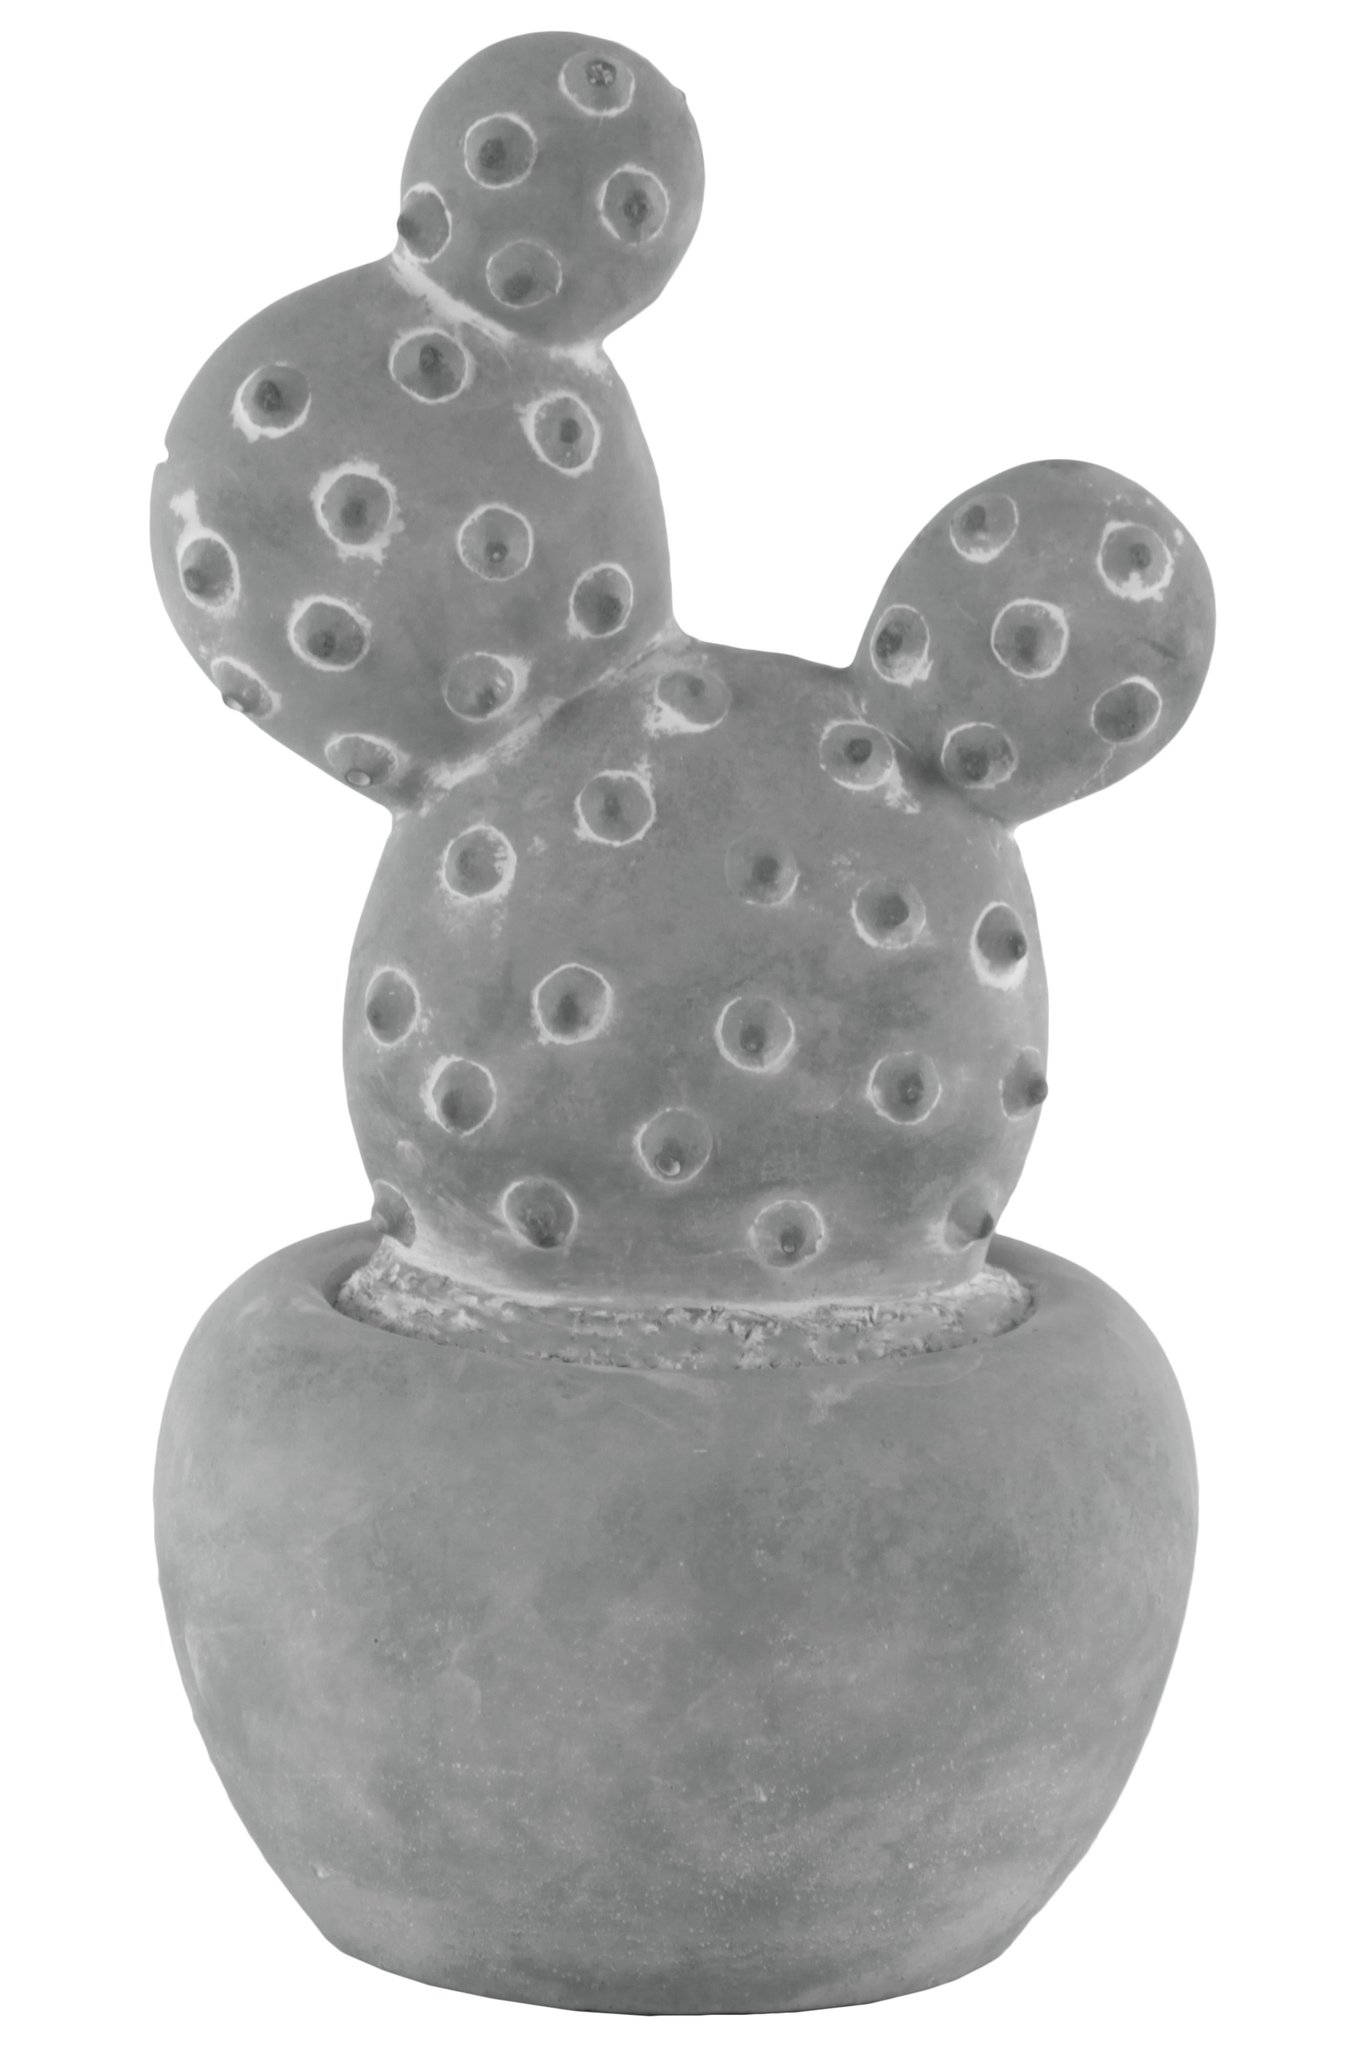 Urban Trends 53601 Cement Cactus Prickly Pear Figurine on Round Base Large Washed Concrete Finish, Gray